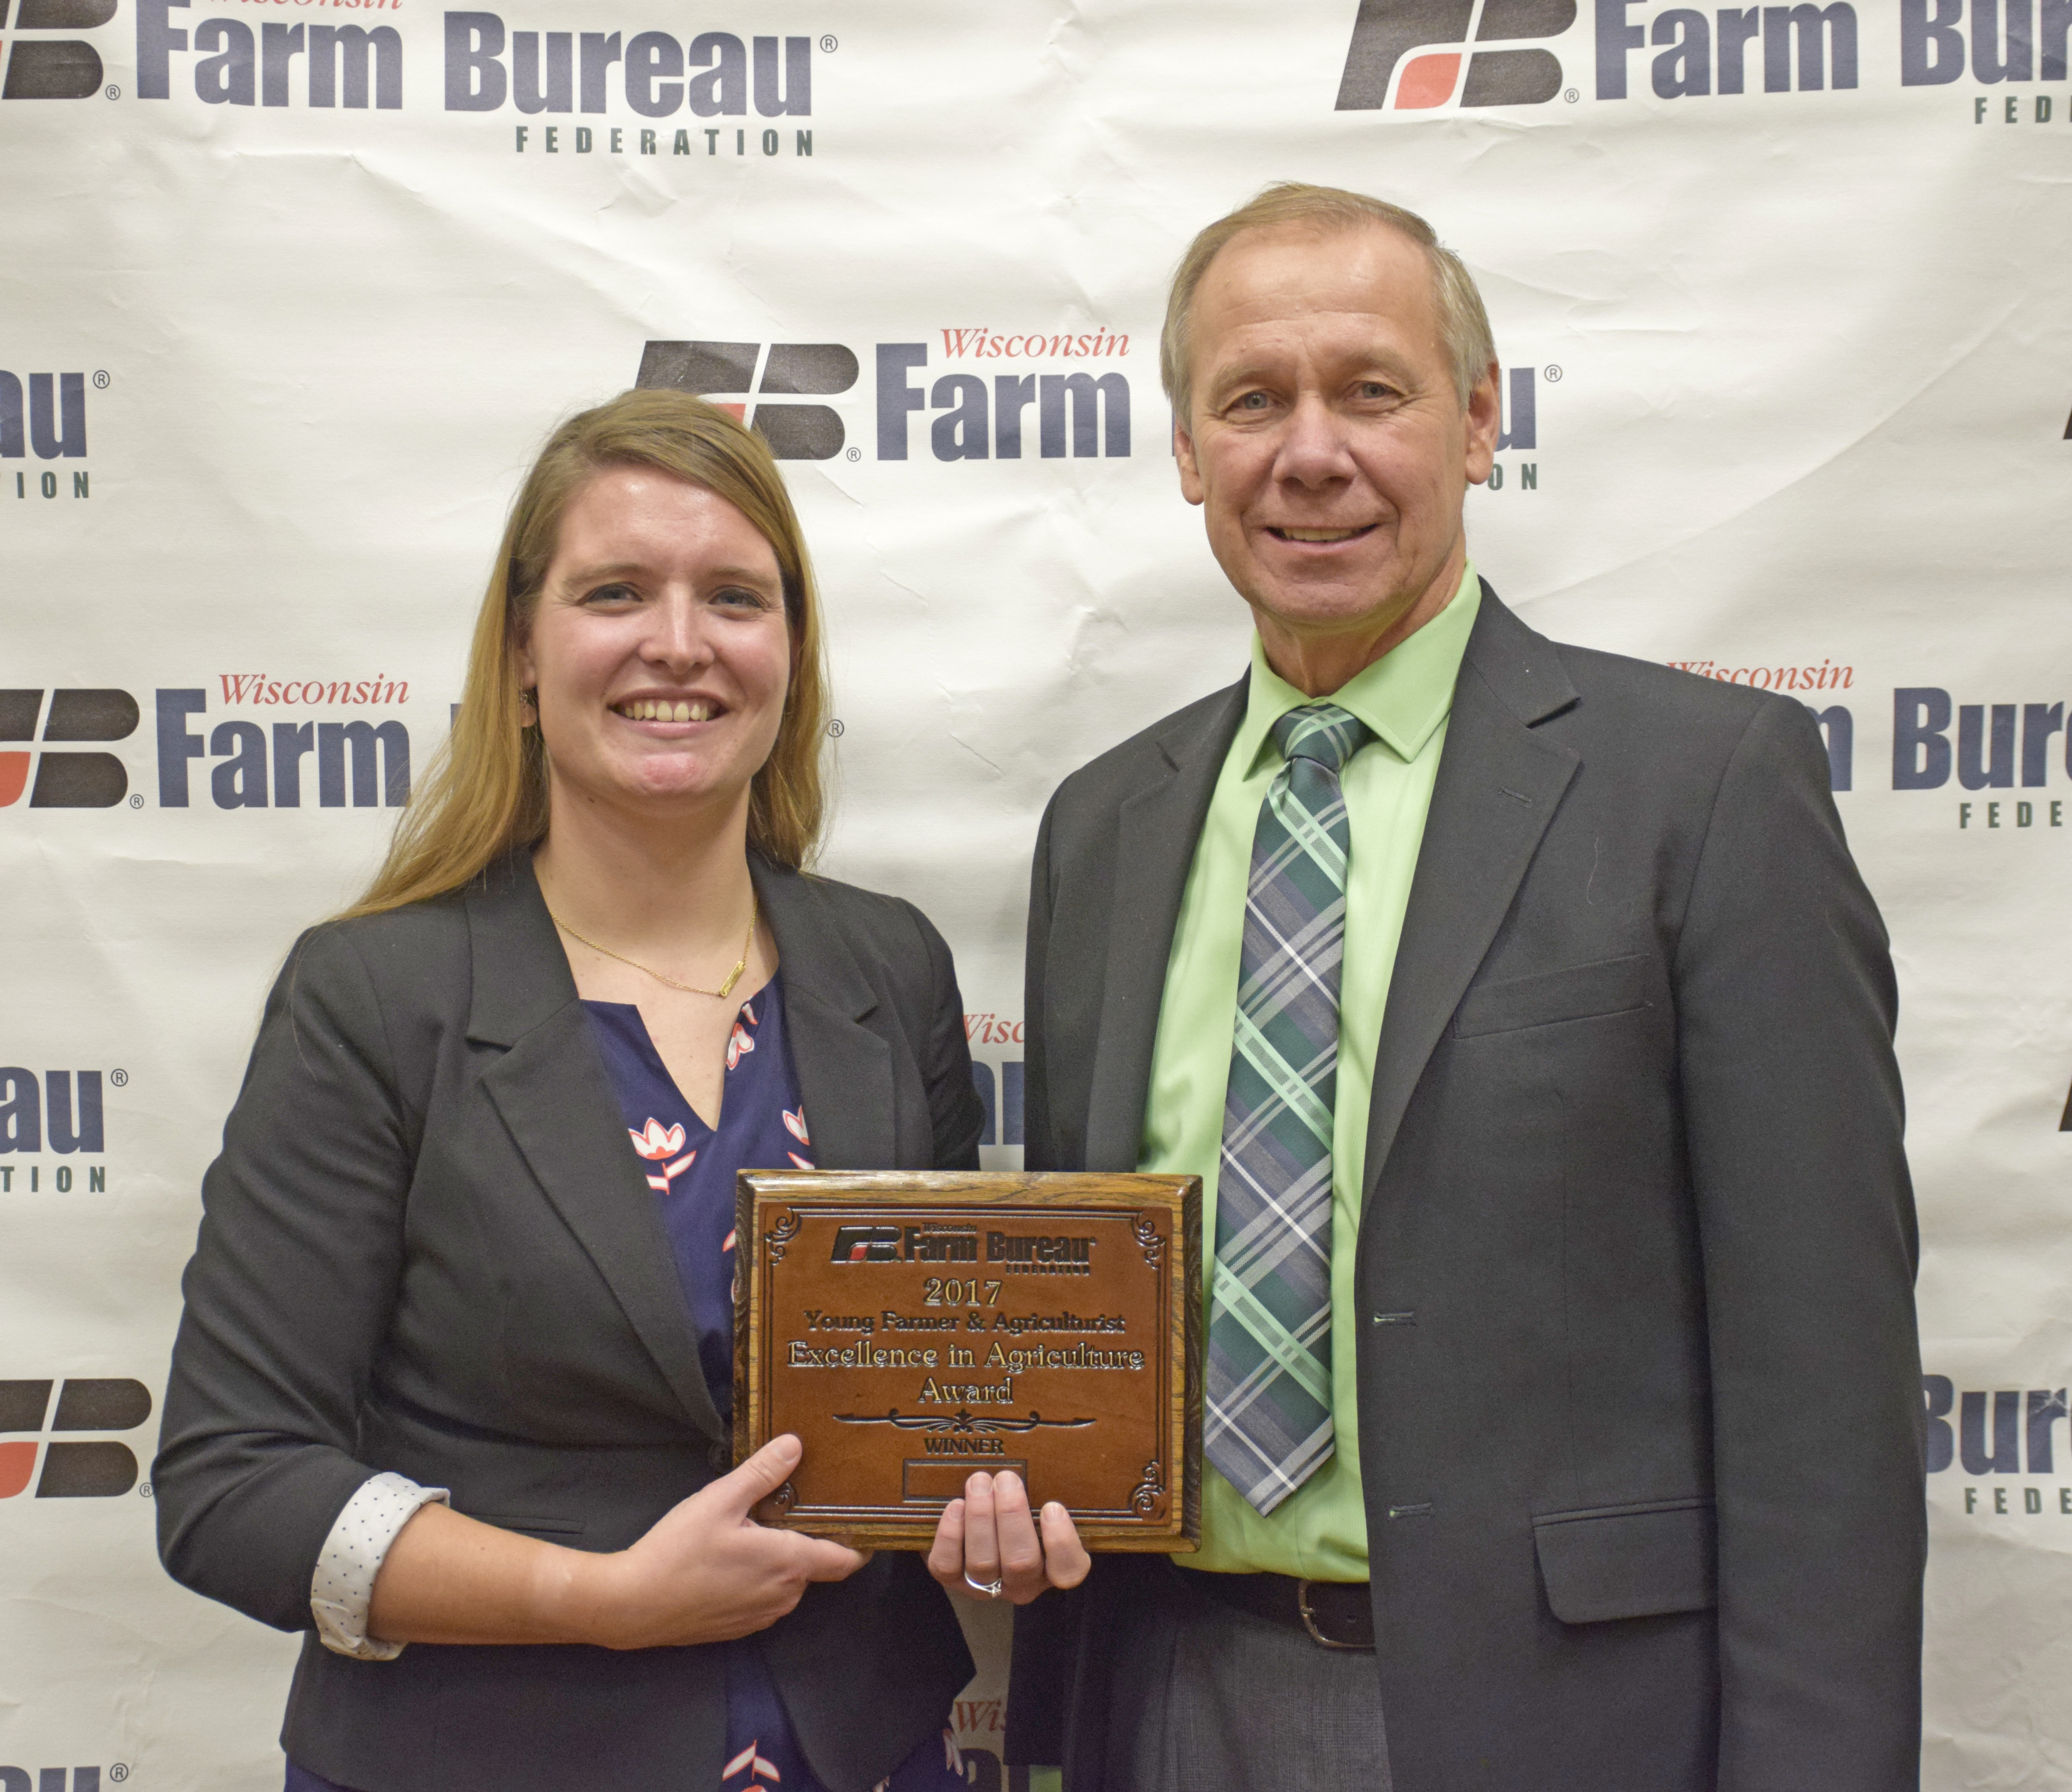 Lynn Dickman Wins Farm Bureau's Excellence in Agriculture Award